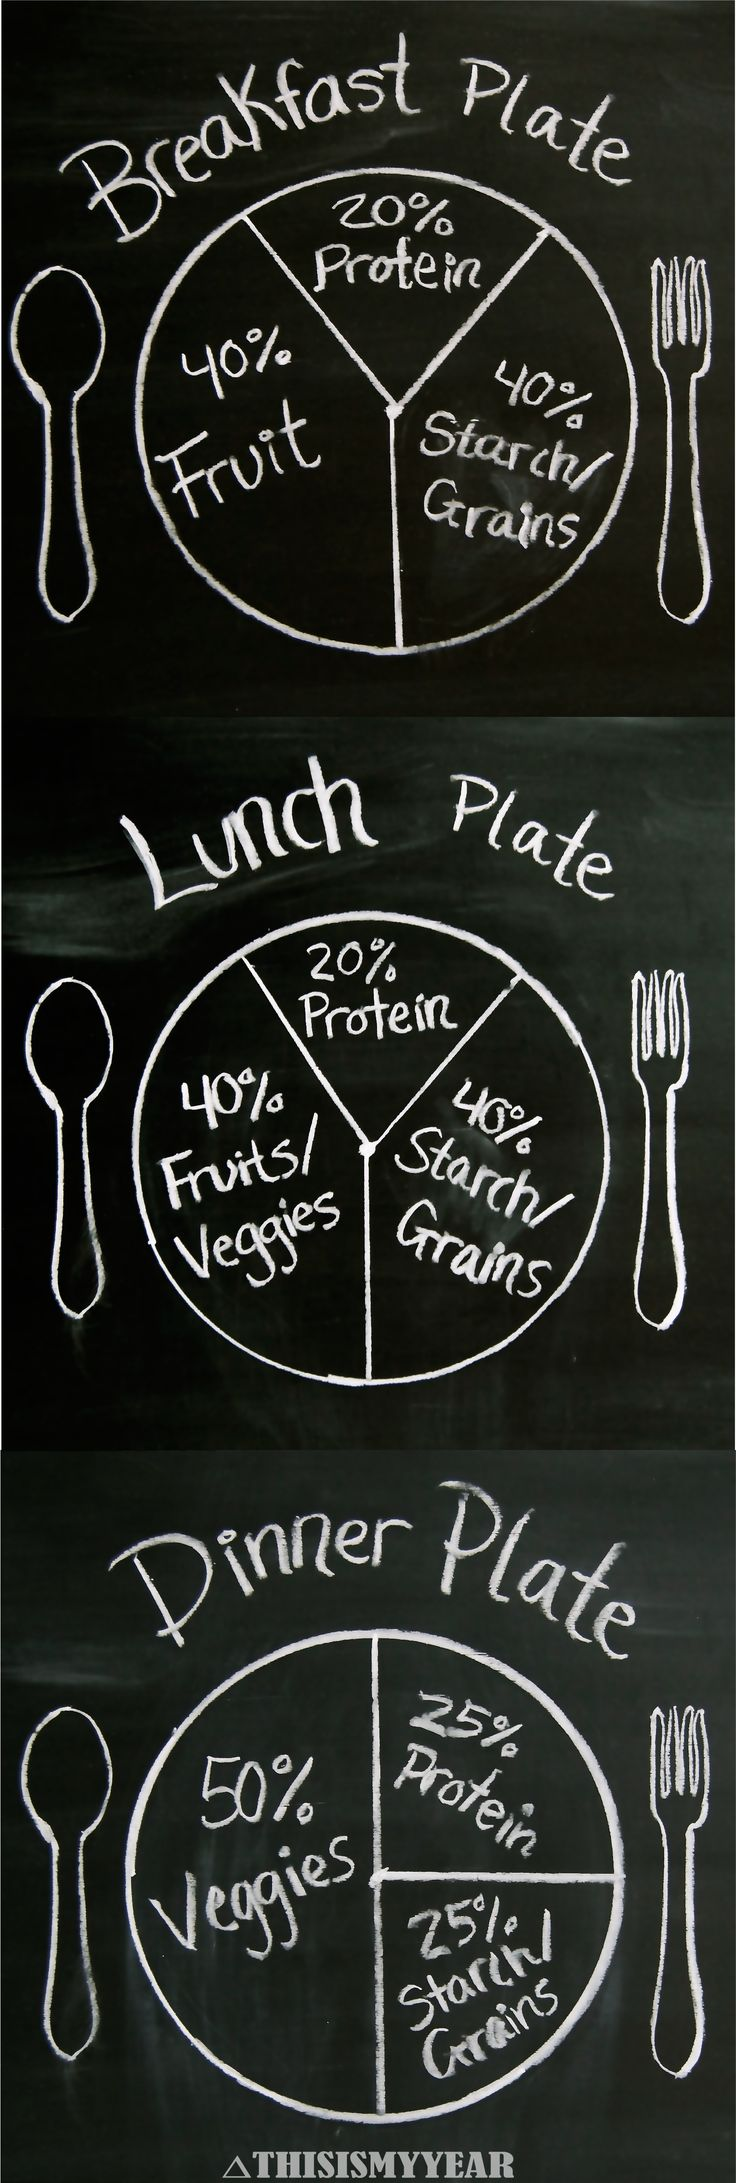 Plant Based Diet Plate Portions. A great guideline to use when fixing your plate. Great place to start I would throw a little more protein on the plates though #thisismyyear #plantbased